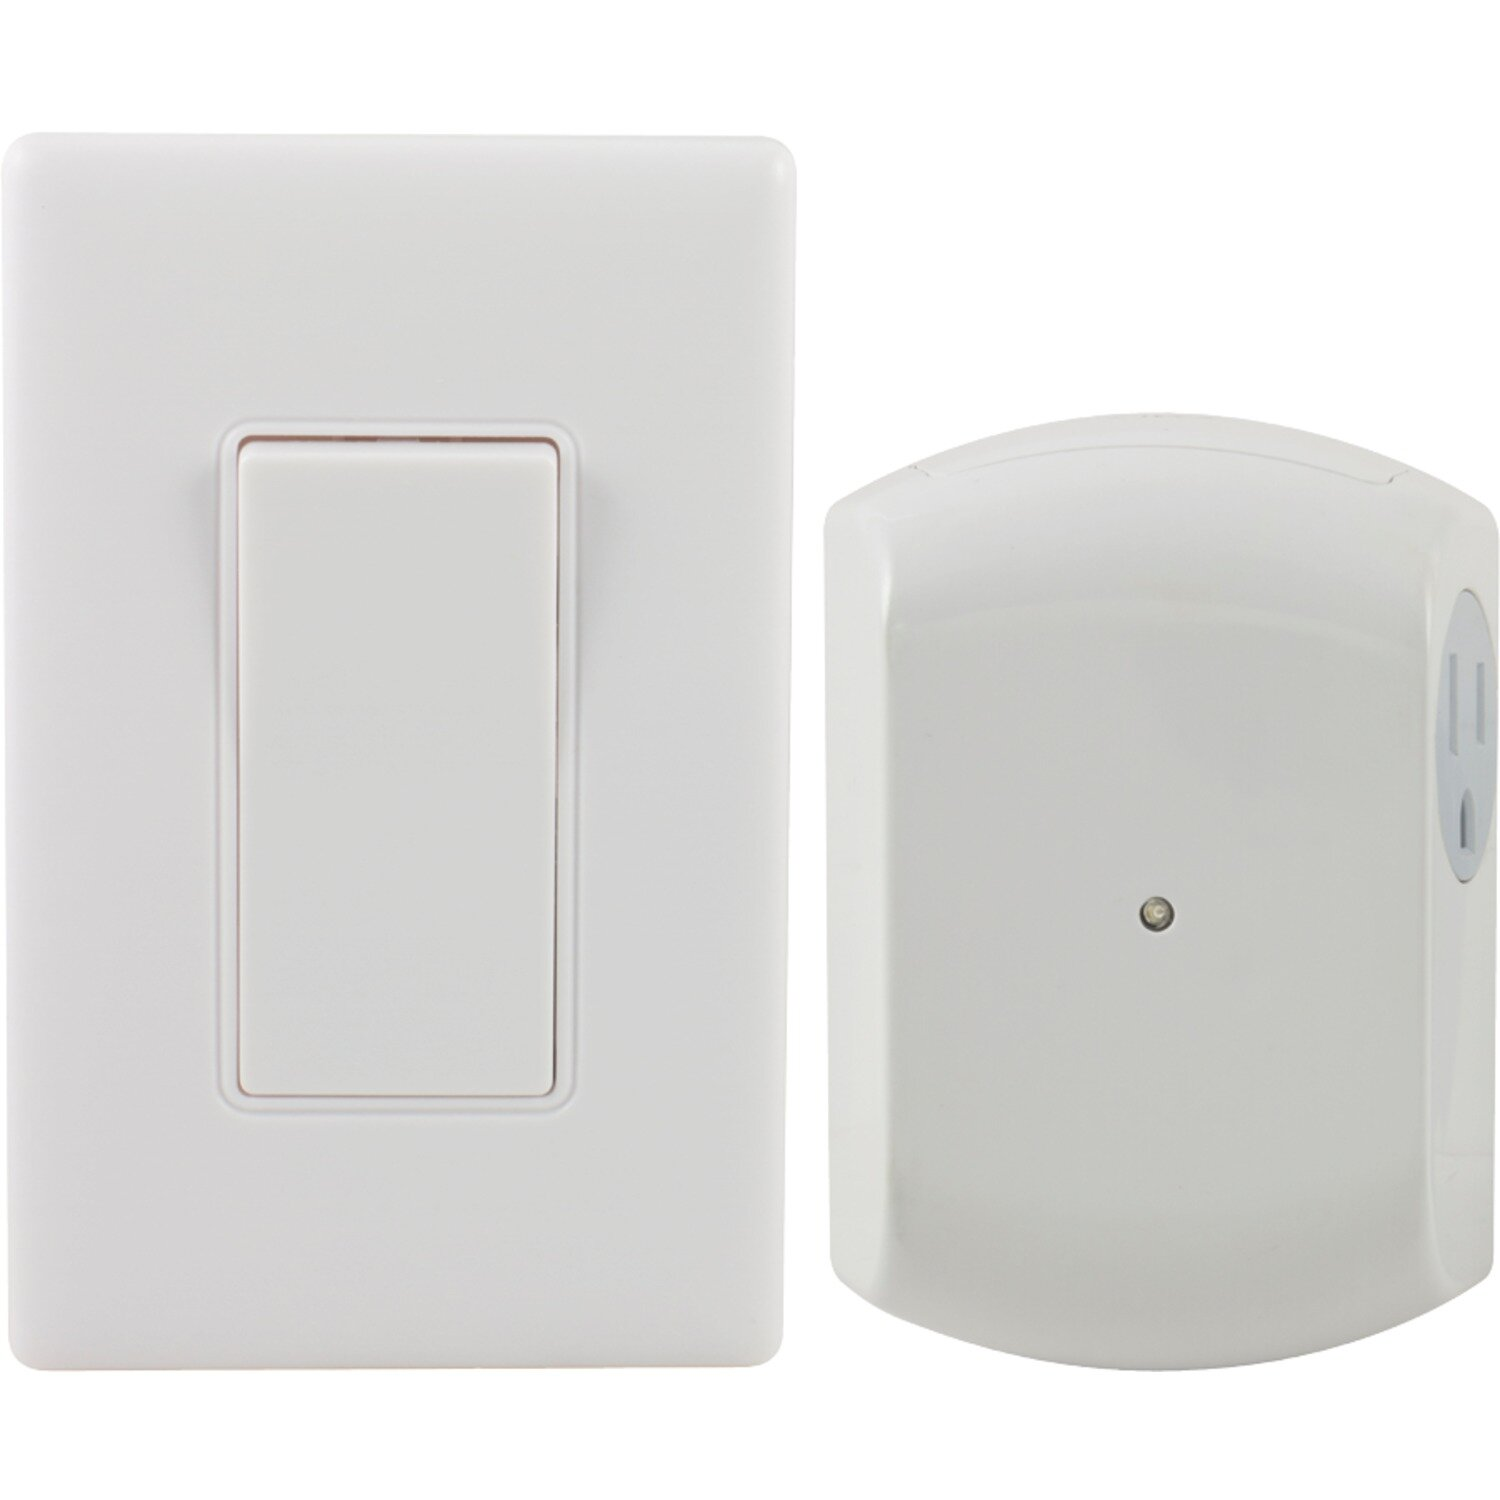 GE Wireless Switch Light Control Wall Mounted Outlet | Wayfair